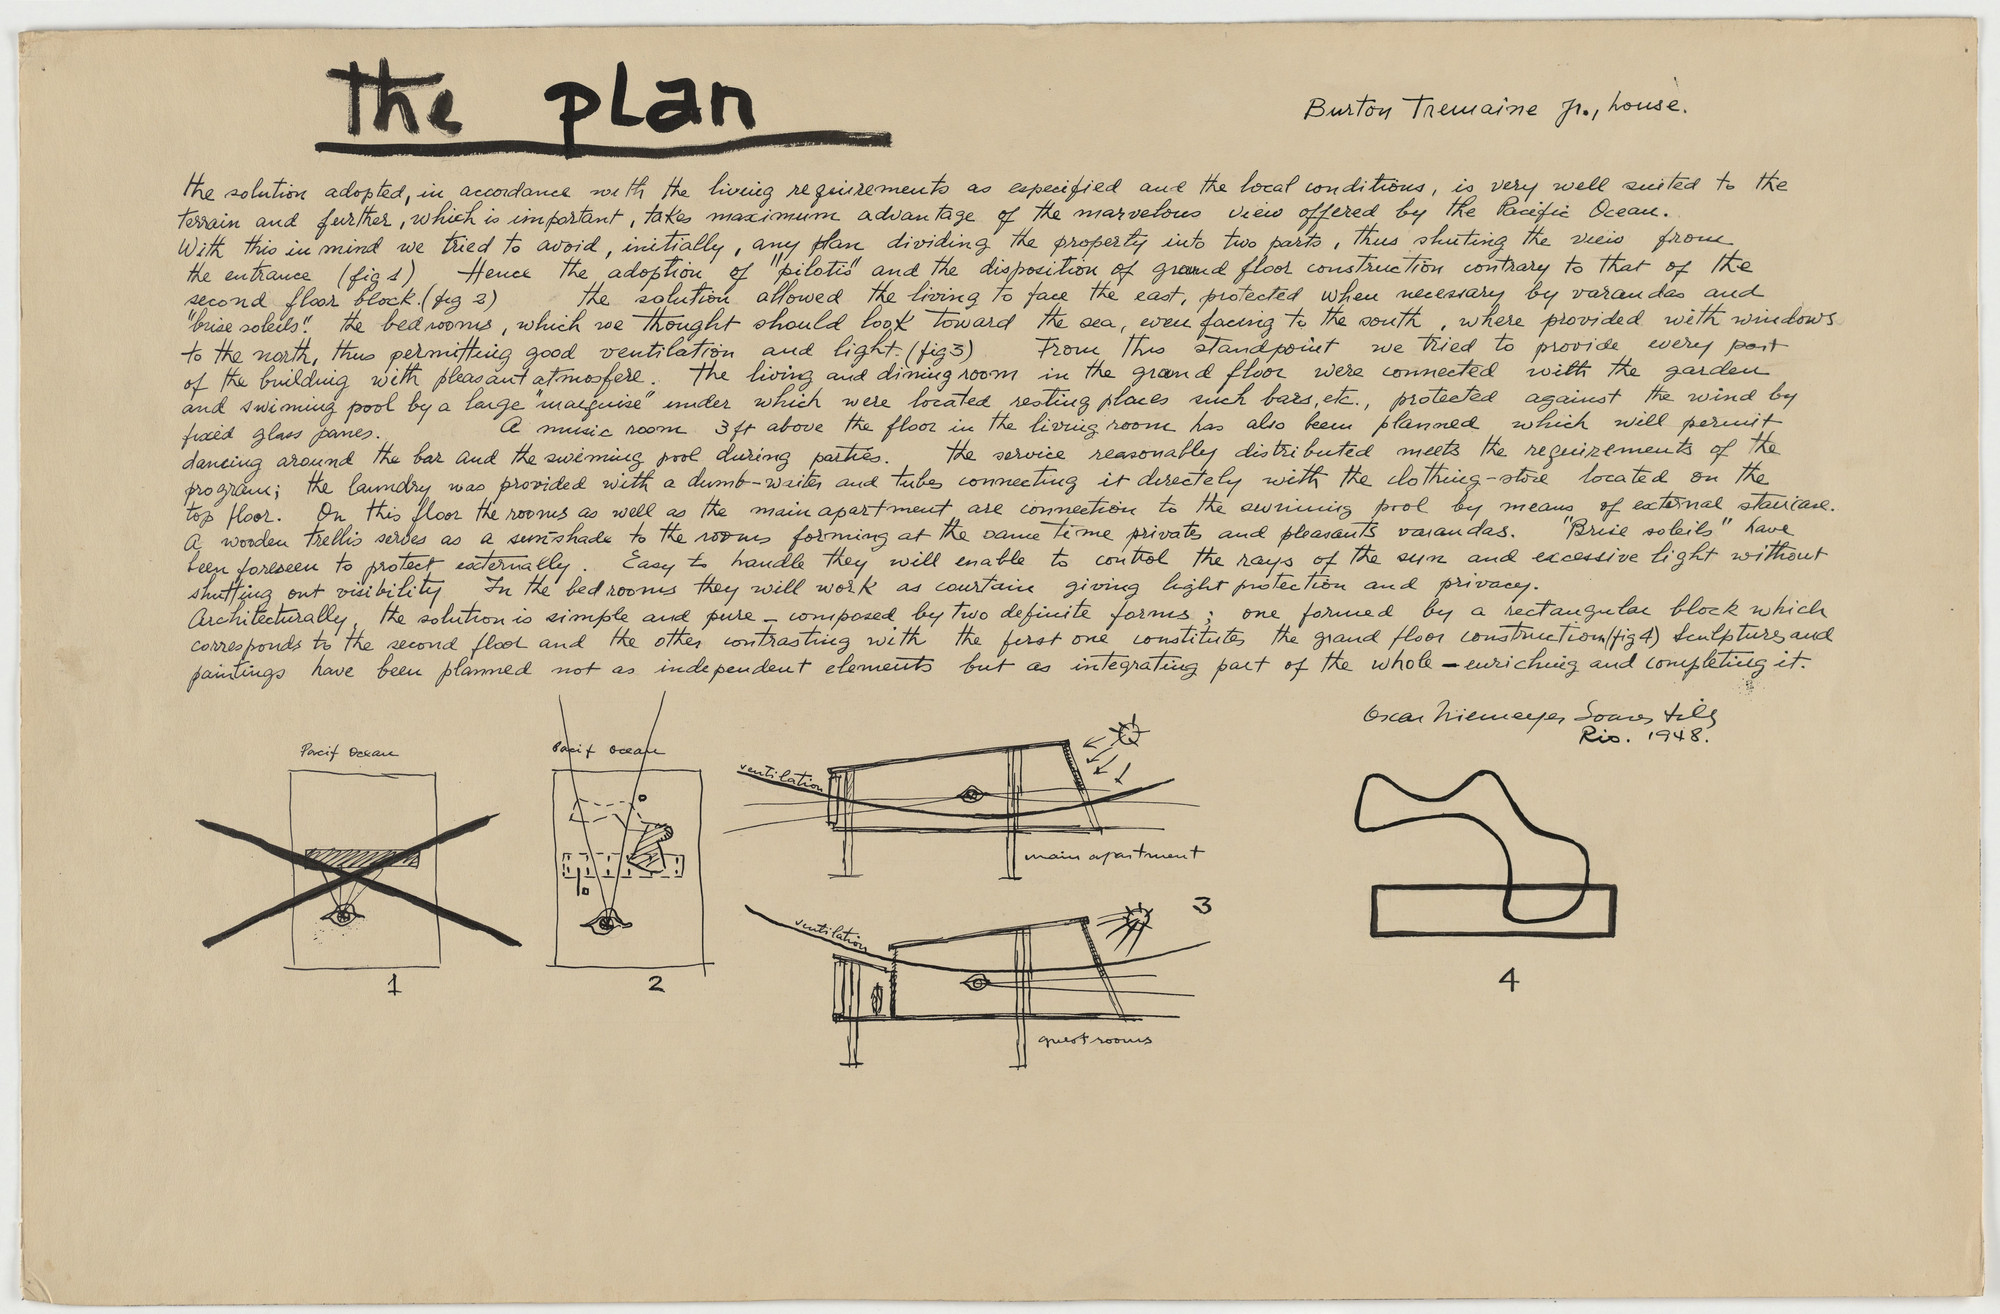 Oscar Niemeyer, Roberto Burle Marx. Beach House for Mr. and Mrs. Burton Tremaine, project, Santa Barbara, California (Preliminary sketches and introductory text). 1948